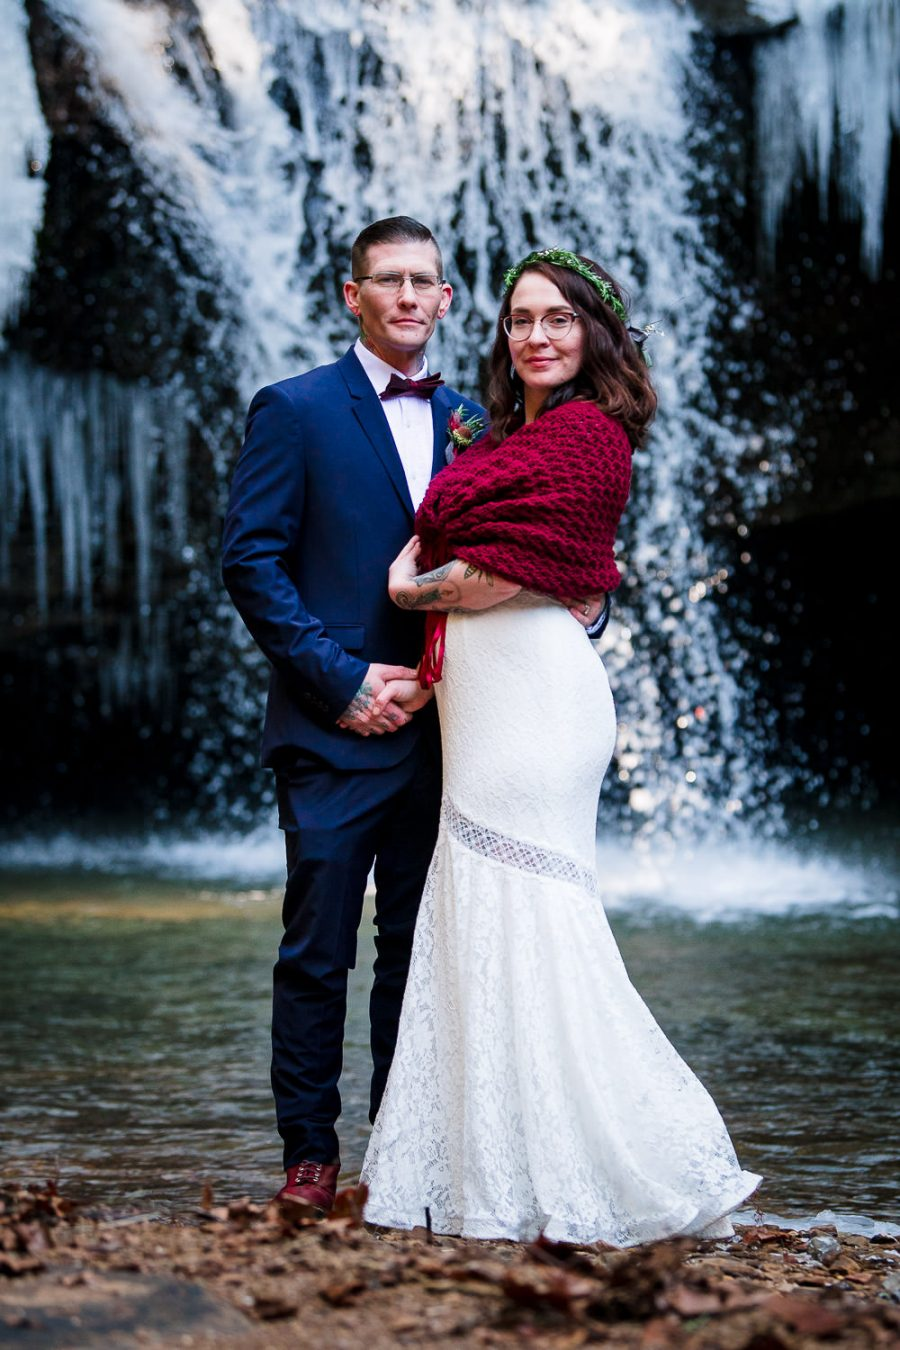 classic wedding portrait in front of waterfall